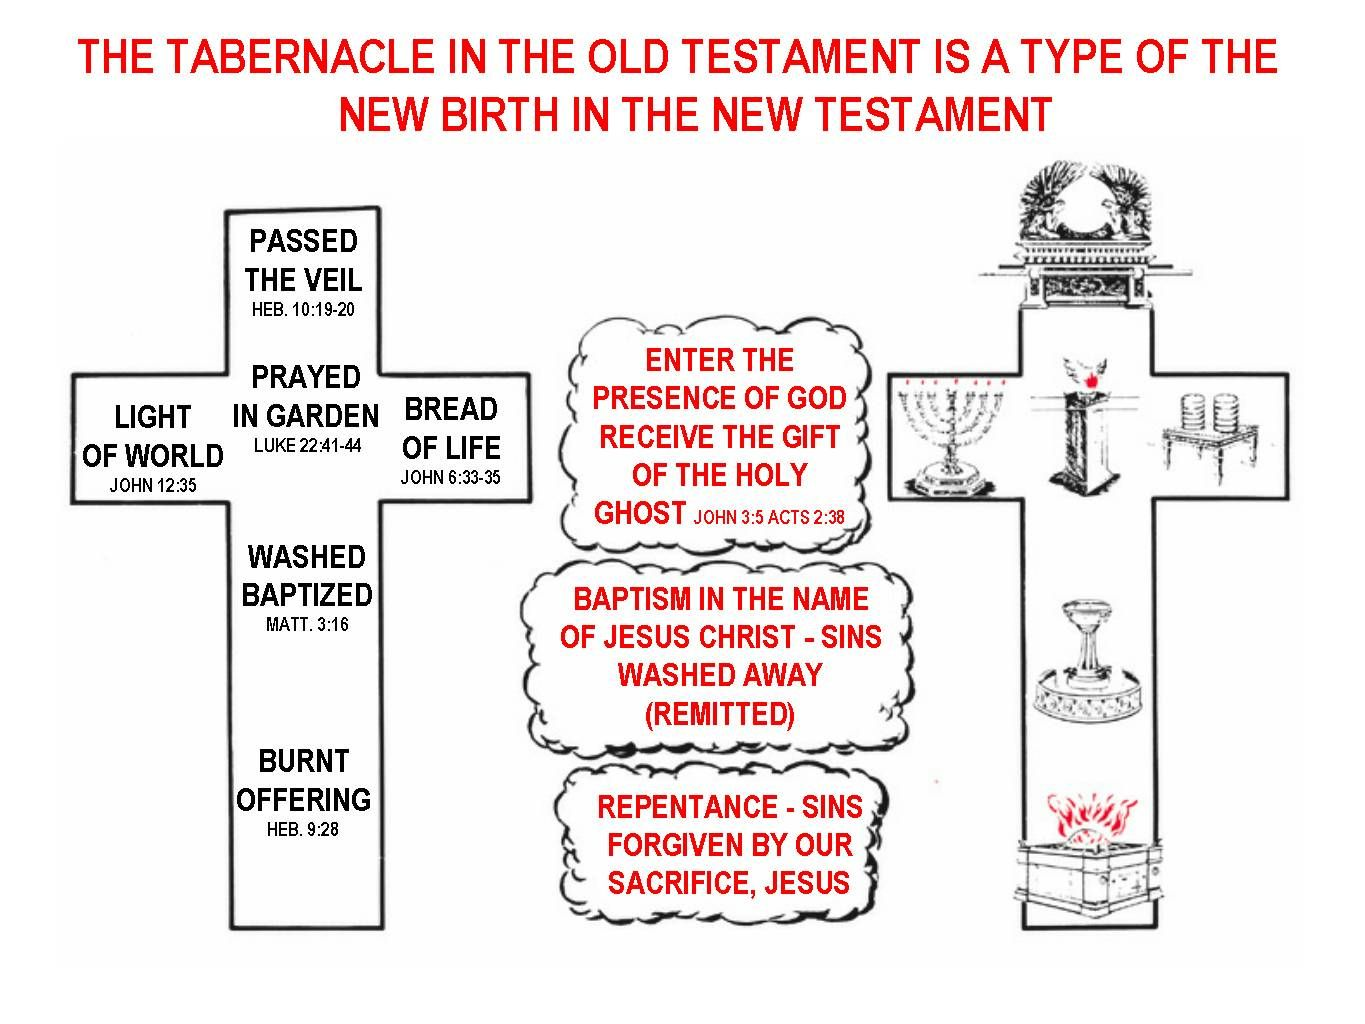 search for truth tabernacle in the old testament is a type of the new birth [ 1365 x 1024 Pixel ]